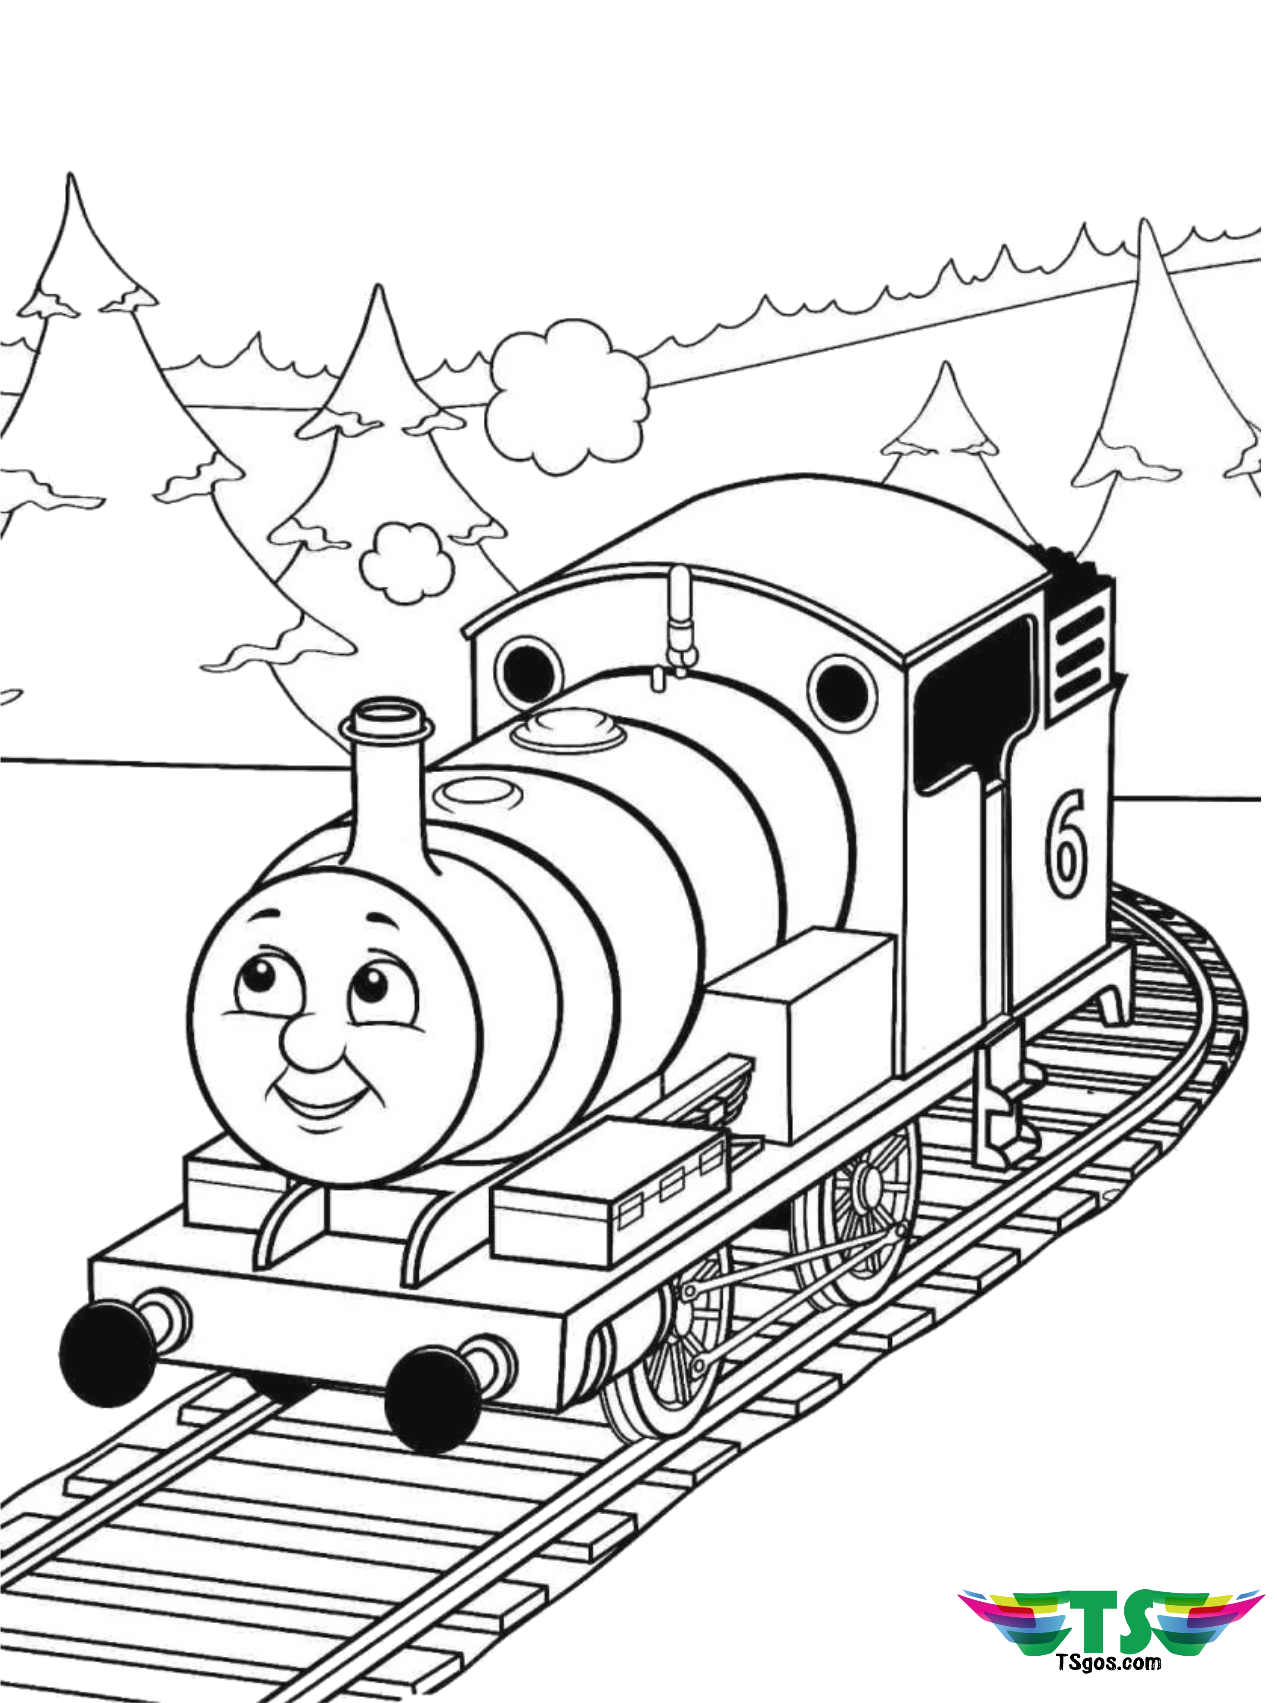 colouring pages thomas the tank engine thomas tank engine coloring pages coloring pages to pages engine tank thomas the colouring